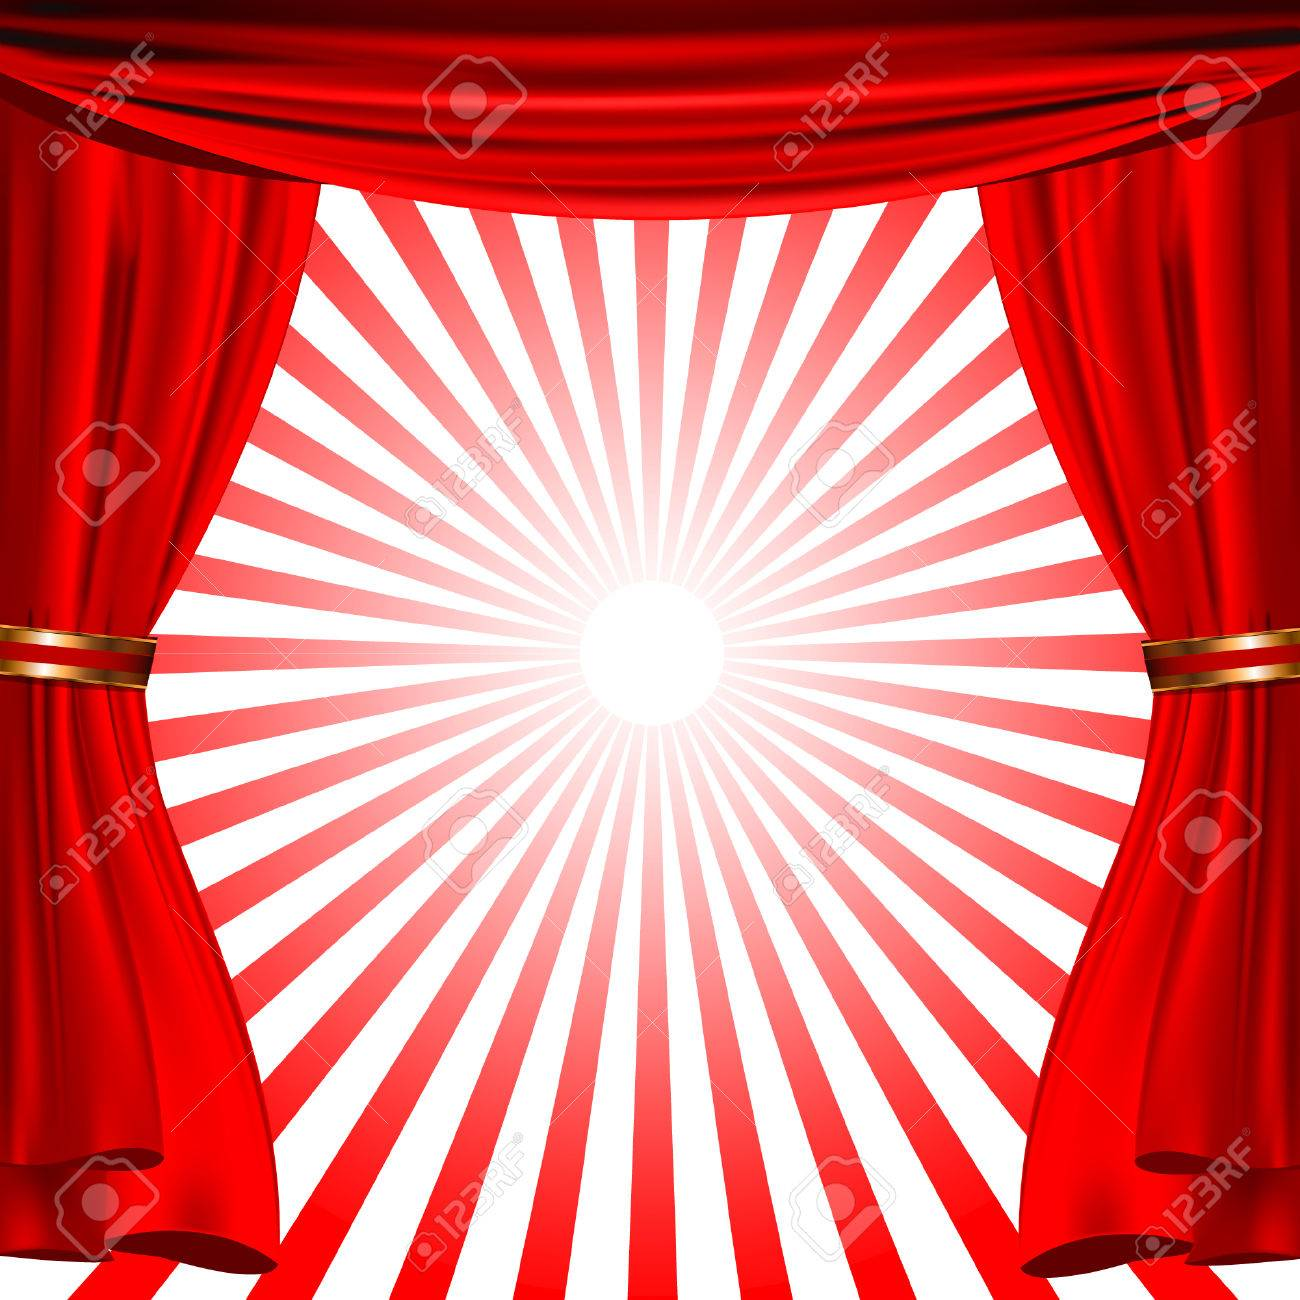 Red Show Curtain With Sunrise Stripes Royalty Free Cliparts, Vectors ...